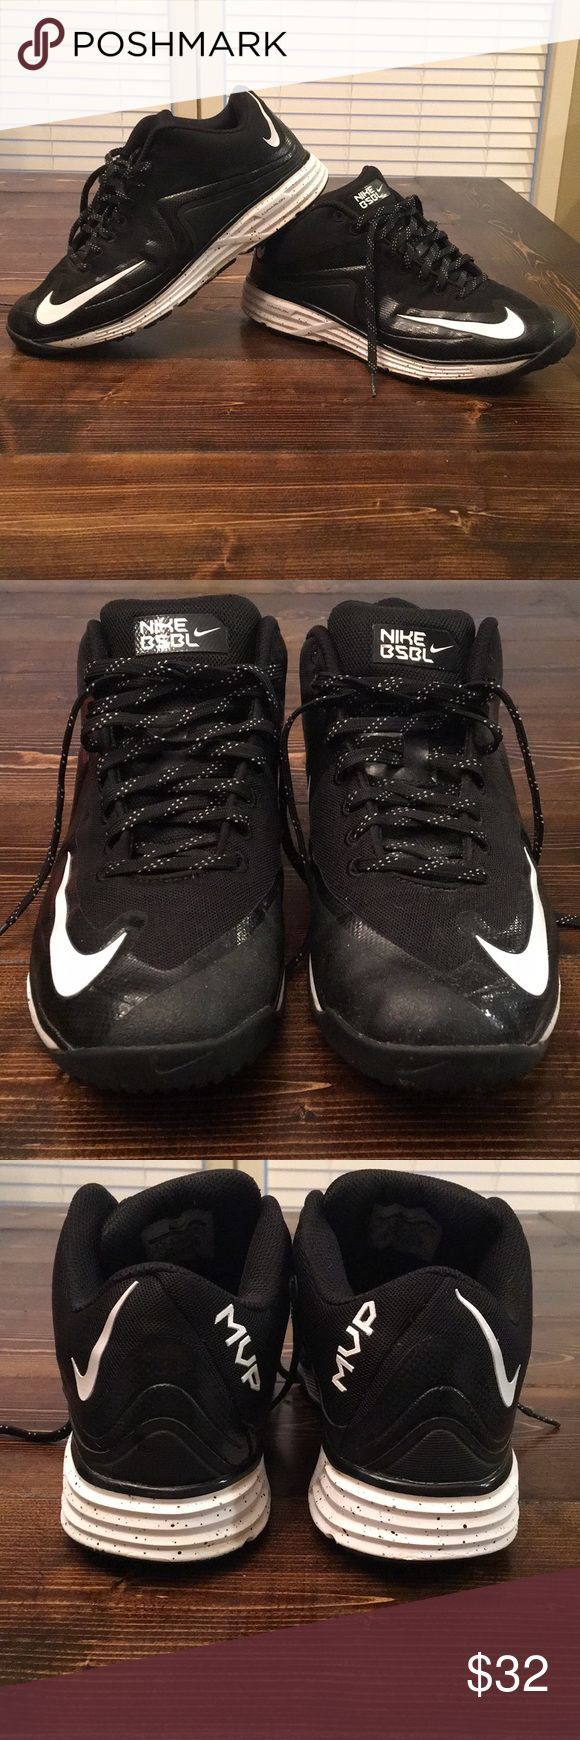 Men's Nike black BSBL turf shoes Worn, but in good condition! Small areas of dirt stain in areas of the creases on soles. Black splatter print on white sole. Nike Shoes Athletic Shoes